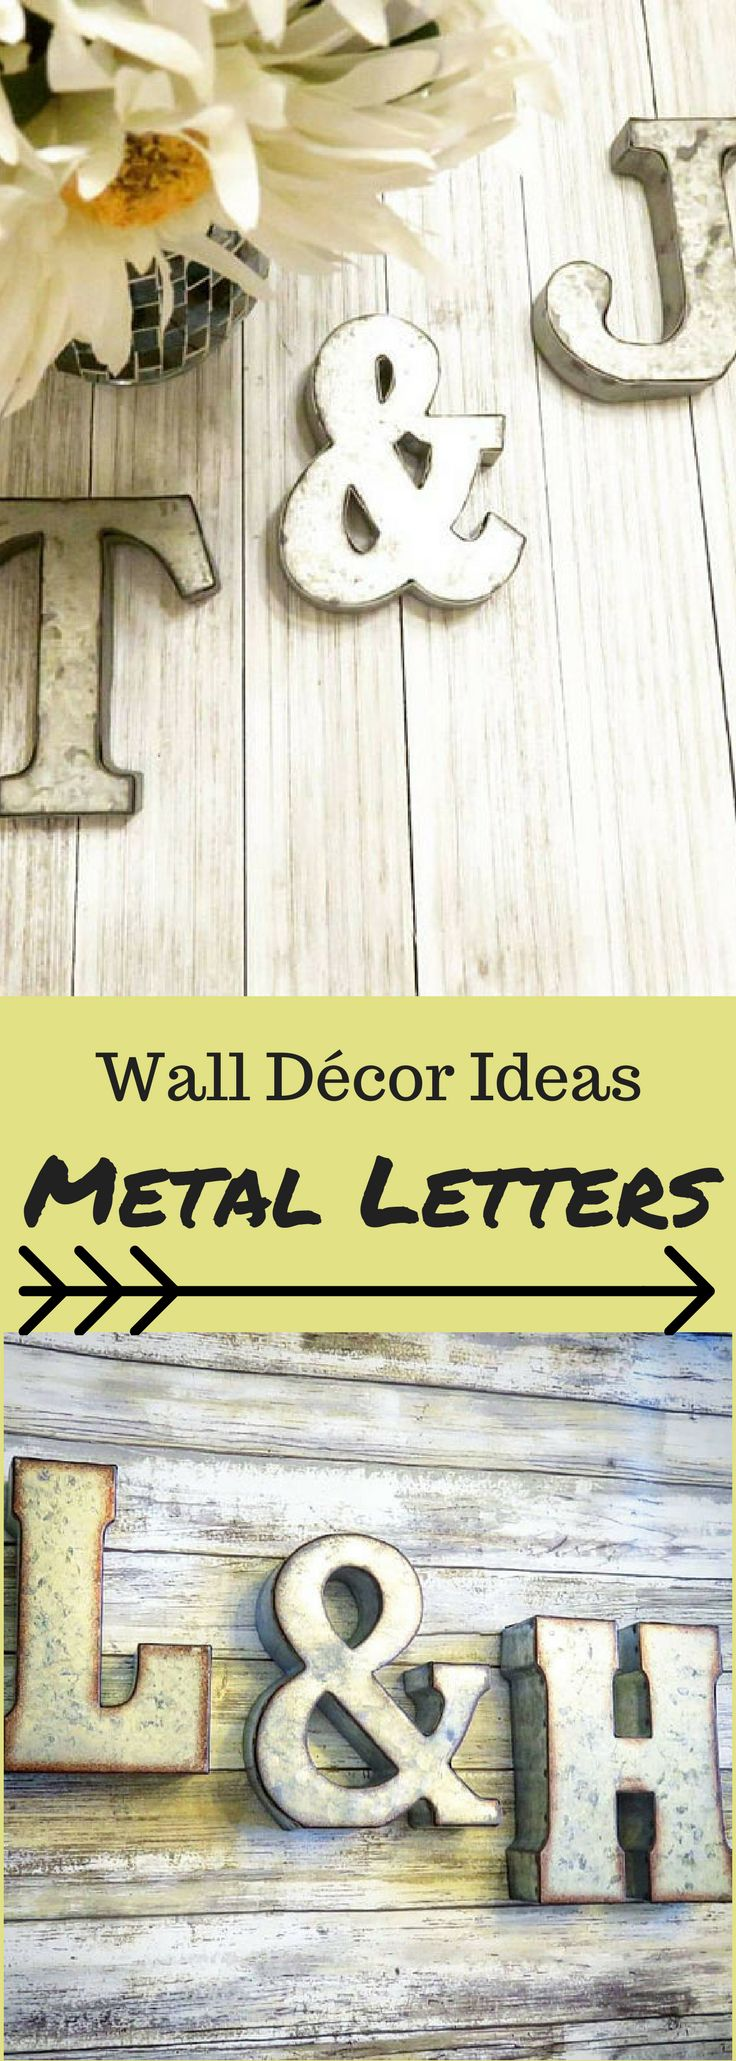 best 25 large metal letters ideas on pinterest girls height chart metal letters and letter. Black Bedroom Furniture Sets. Home Design Ideas